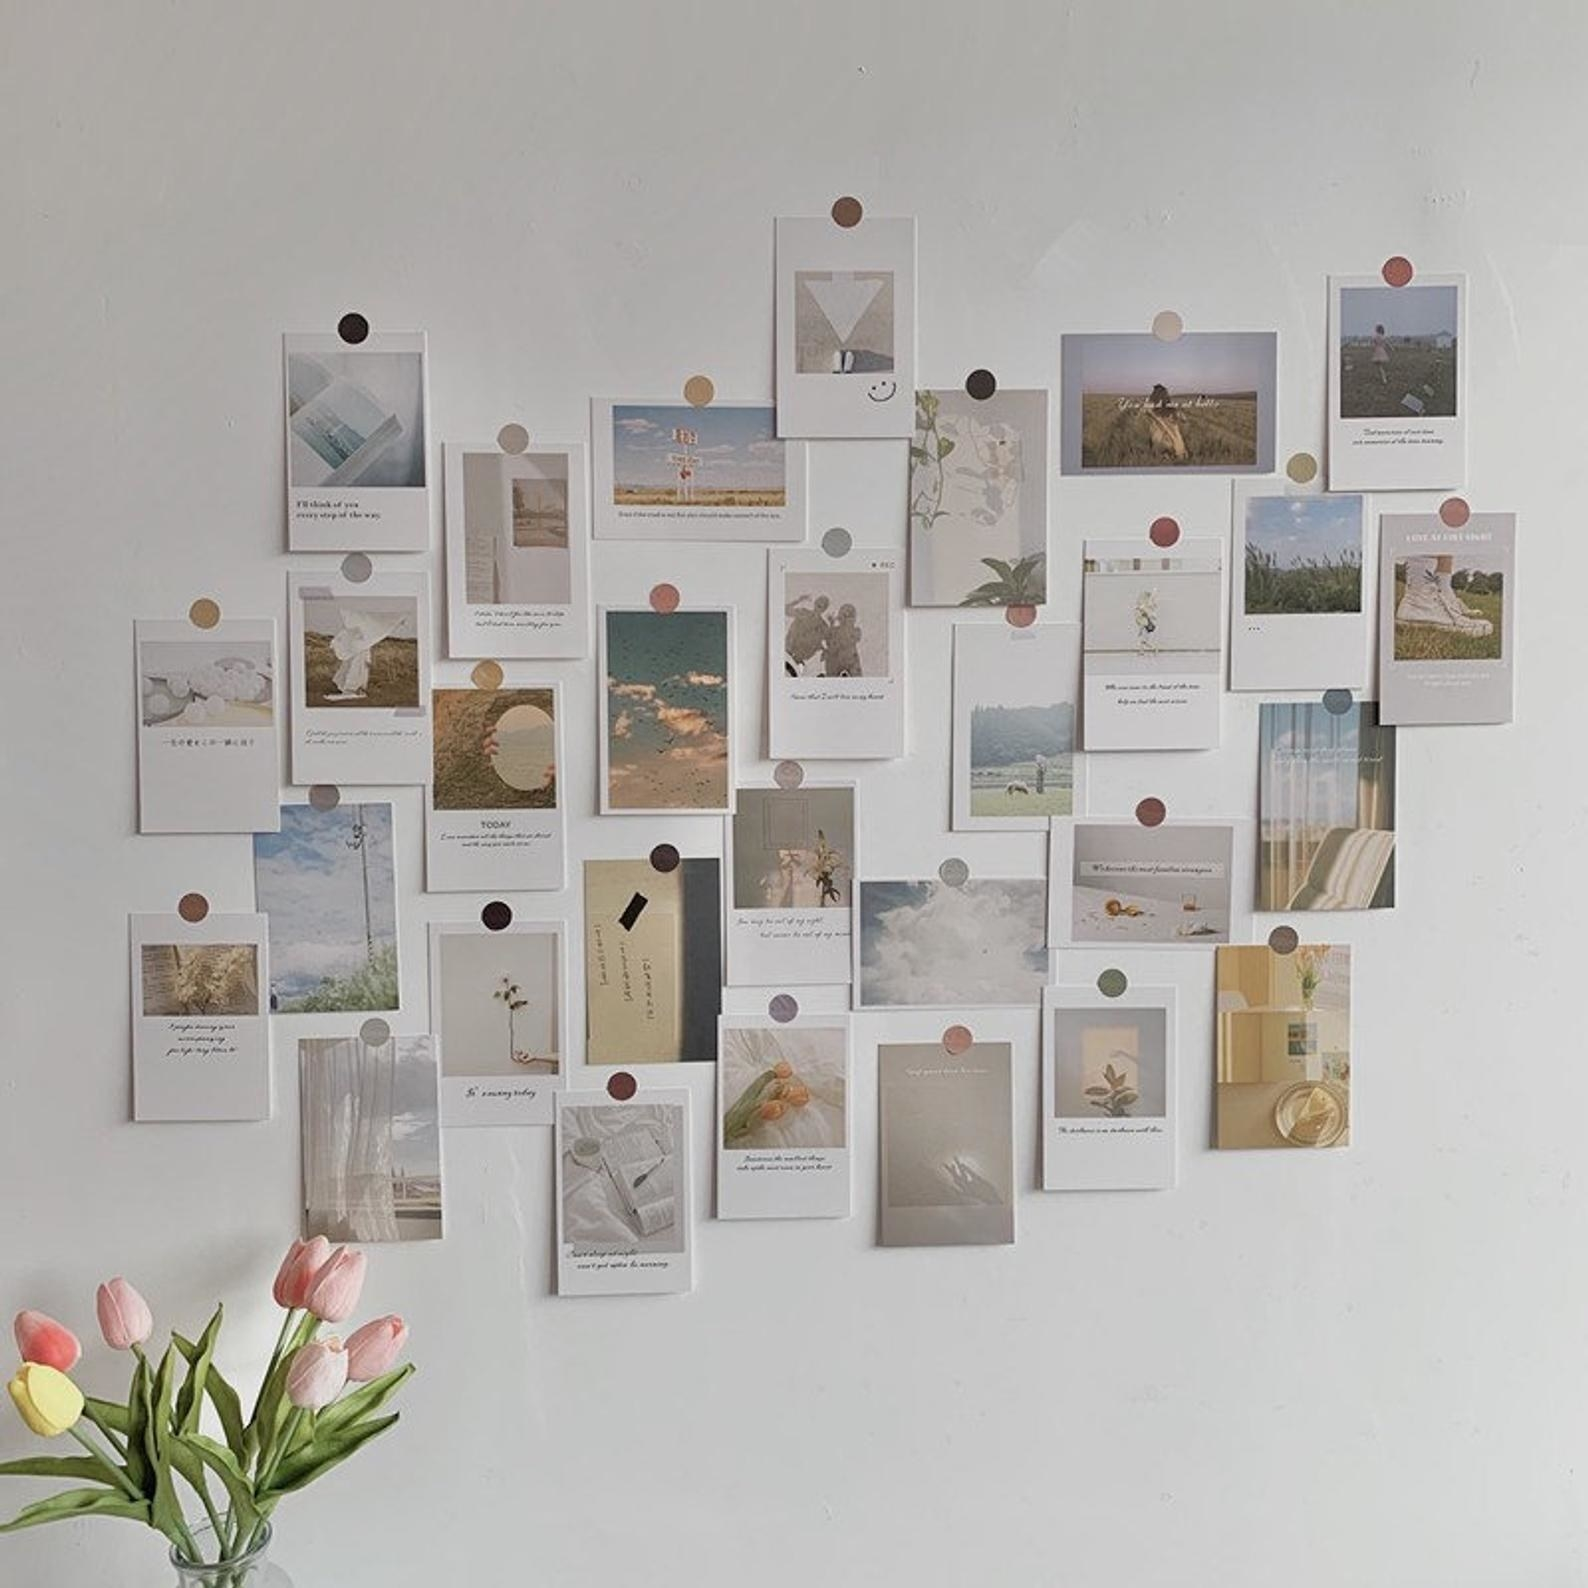 A series of rectangular muted photos and prints stuck to a wall with circular stickers